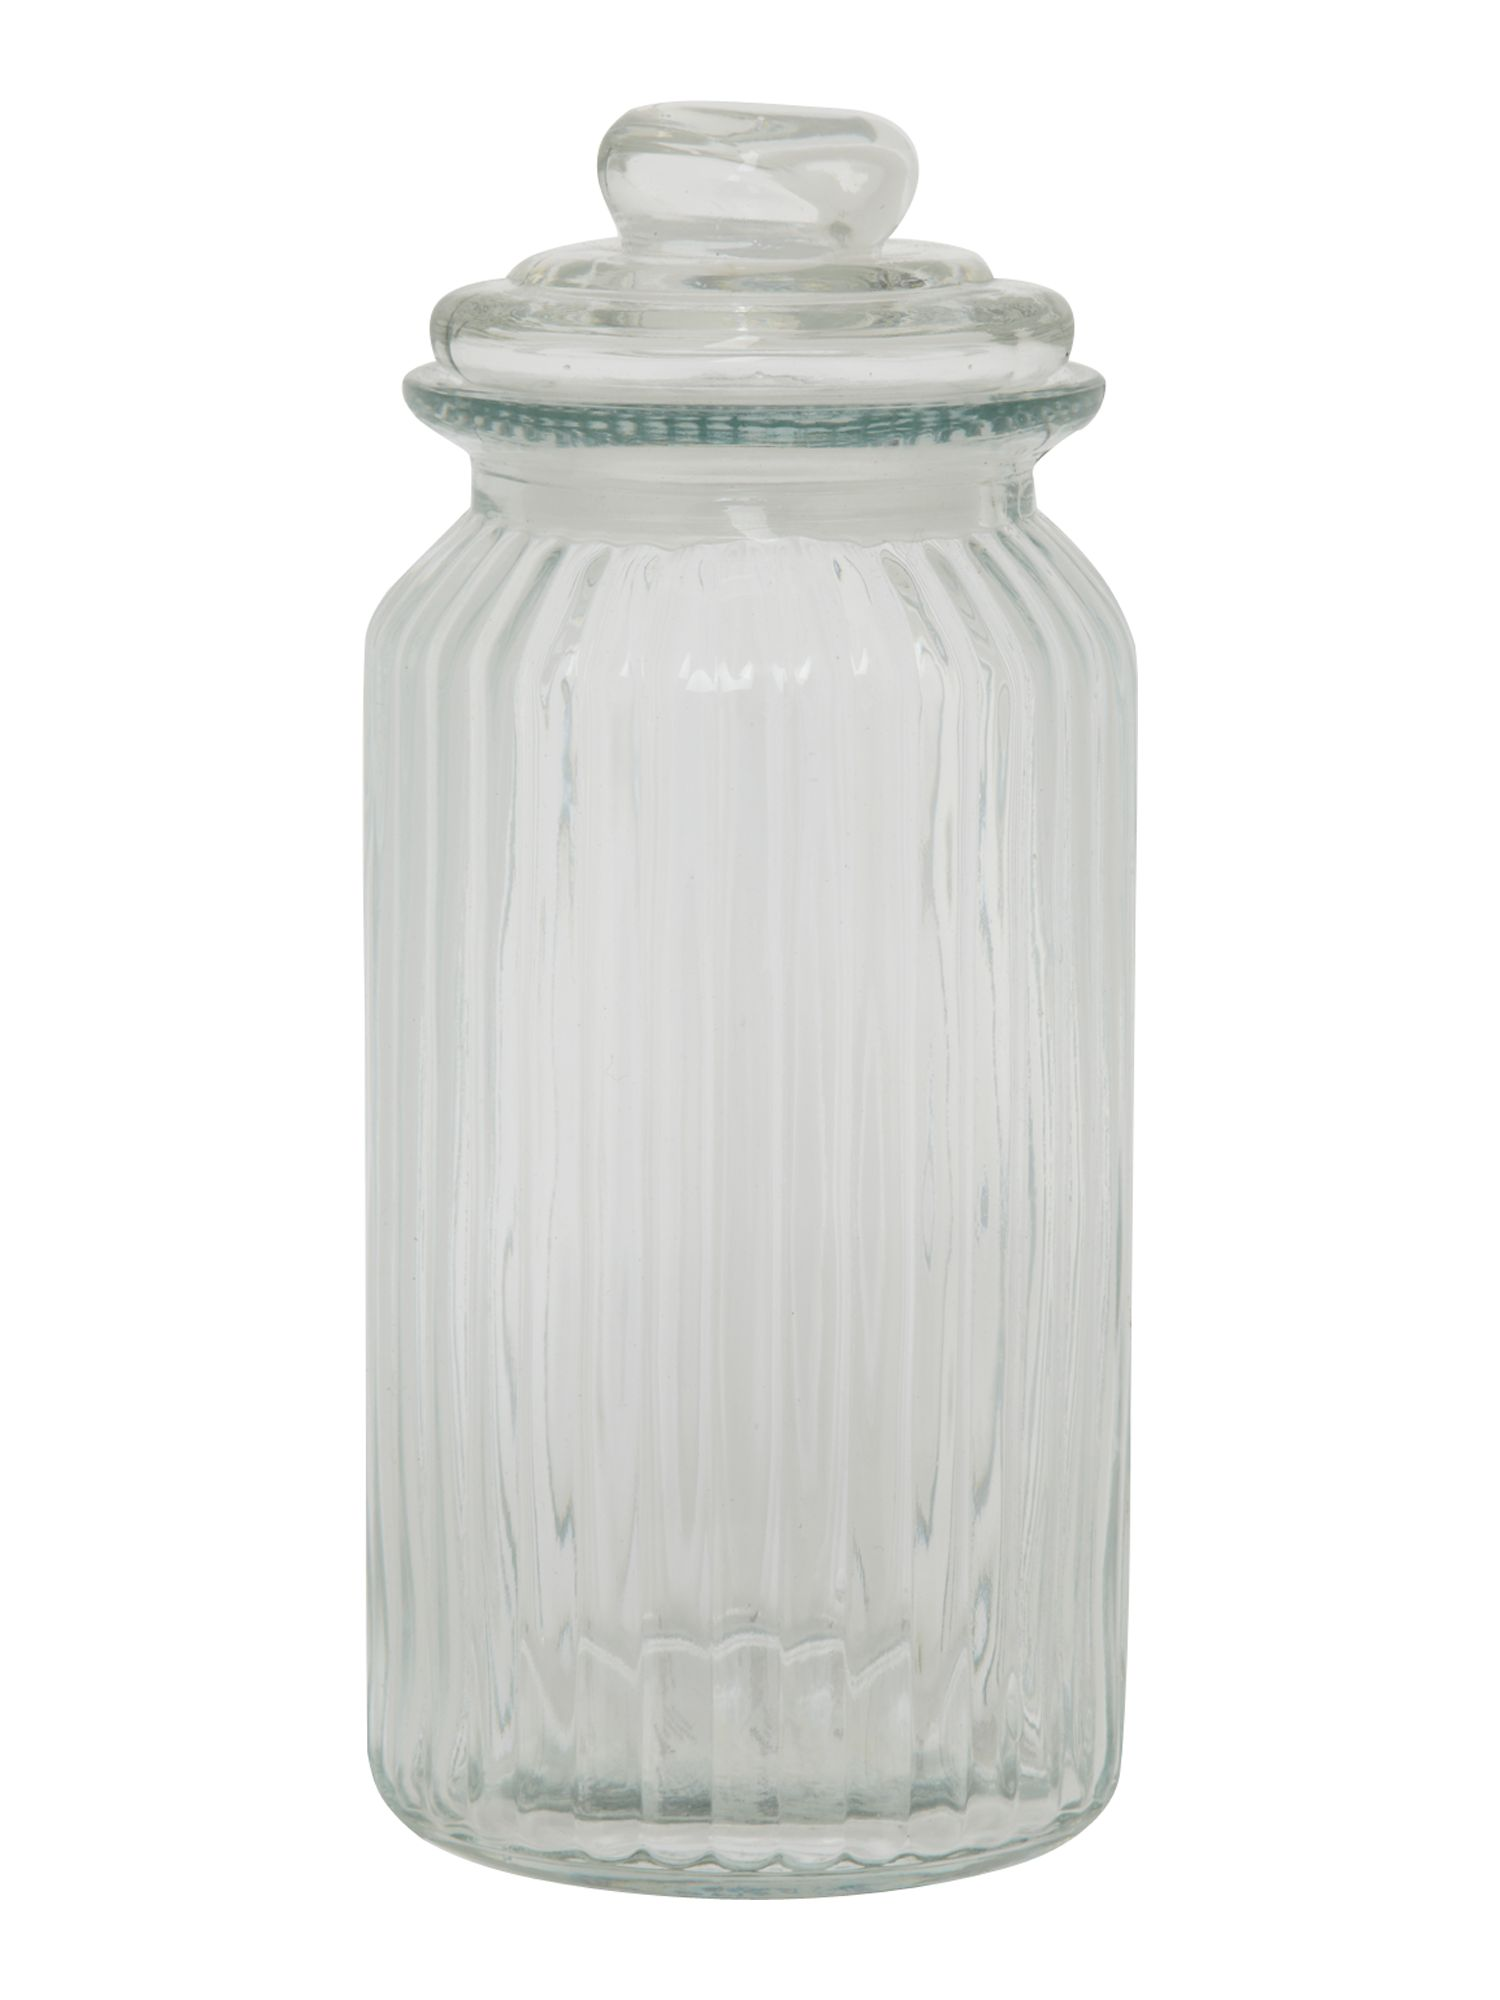 Glass sweetie jar, tall